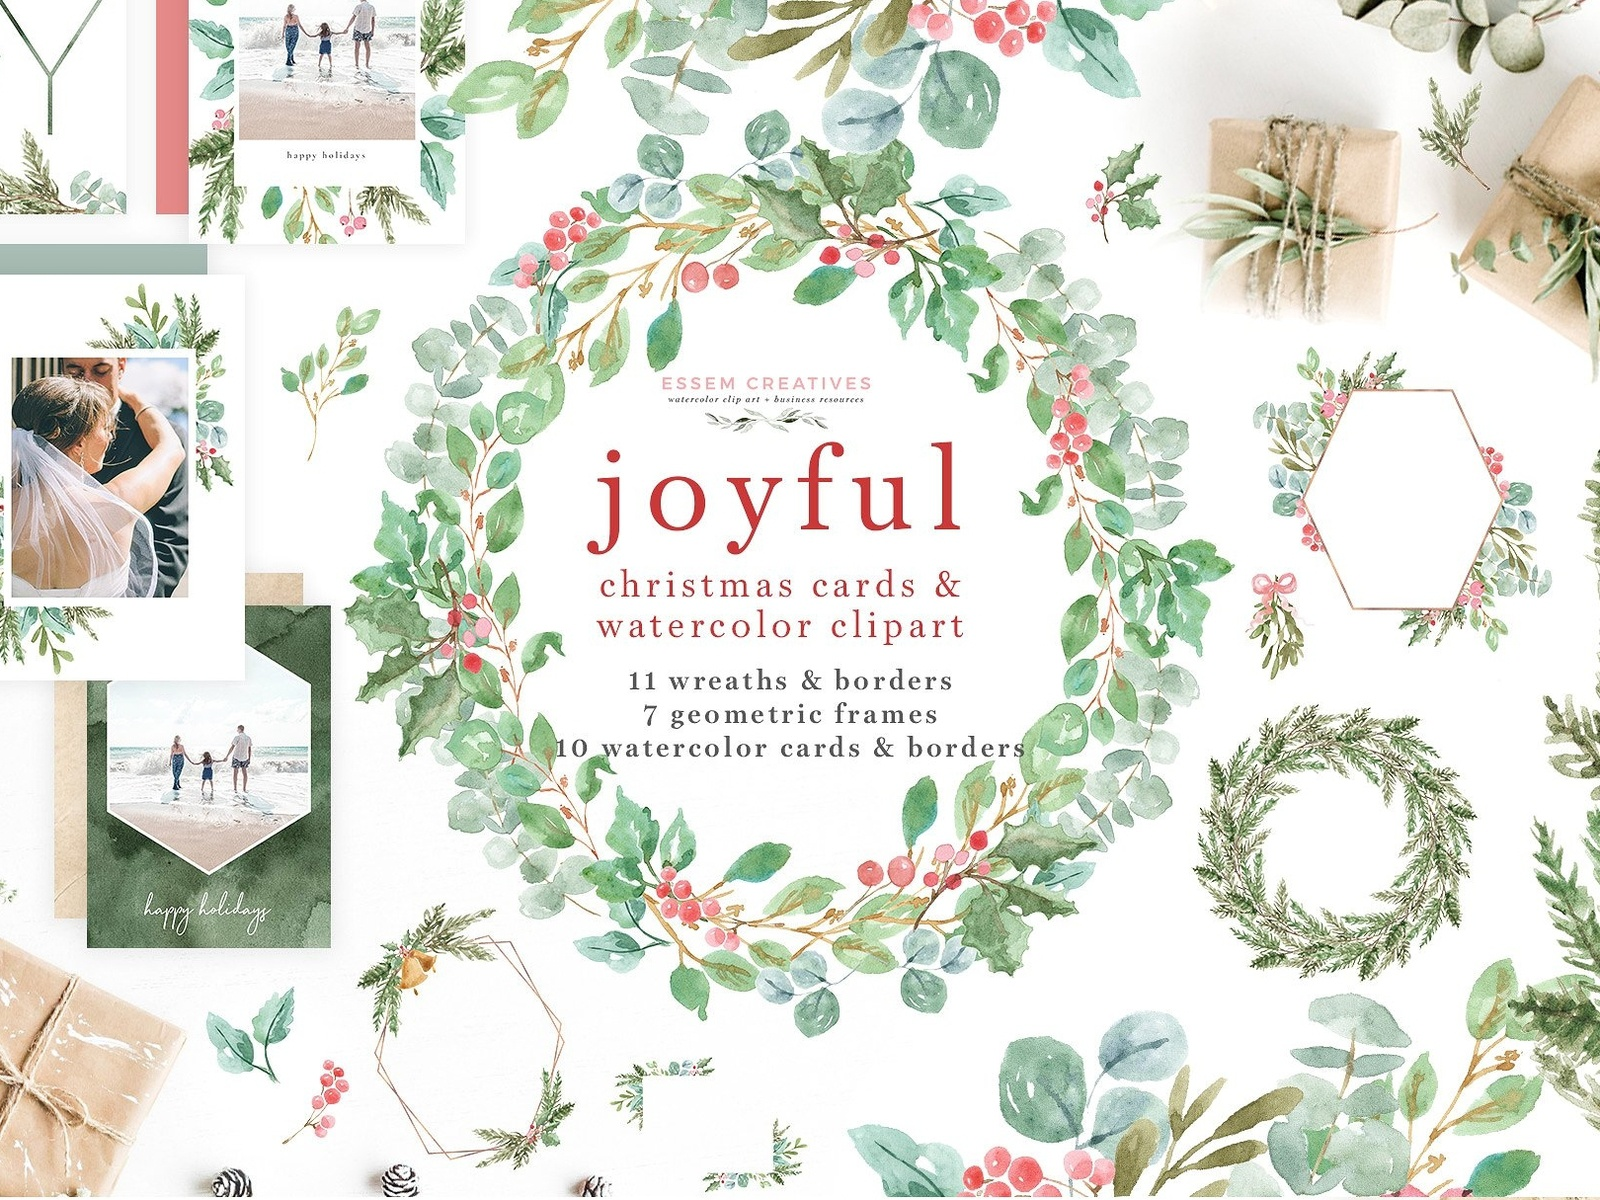 Watercolor Christmas Card Clipart by Graphic Assets | Dribbble ...